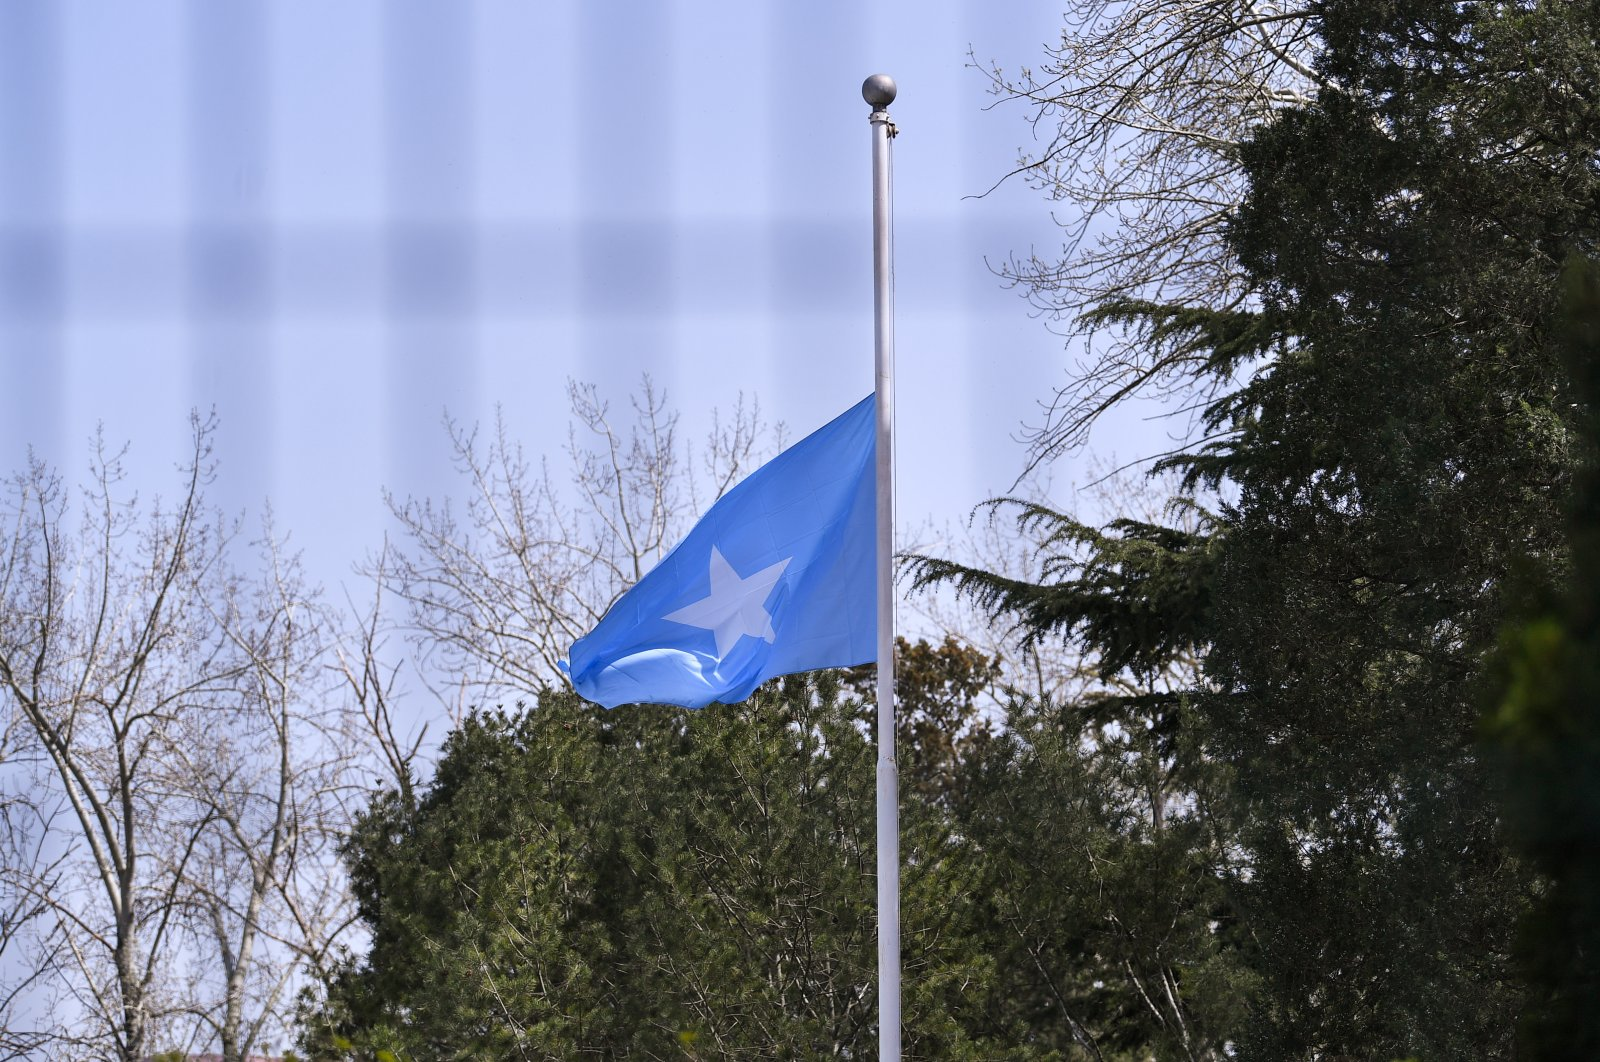 A Somalia flag is lowered to half mast to mourn for the martyrs who died in the fight of COVID-19 in the Somalia embassy in Beijing, China, April 4, 2020. (Reuters Photo)